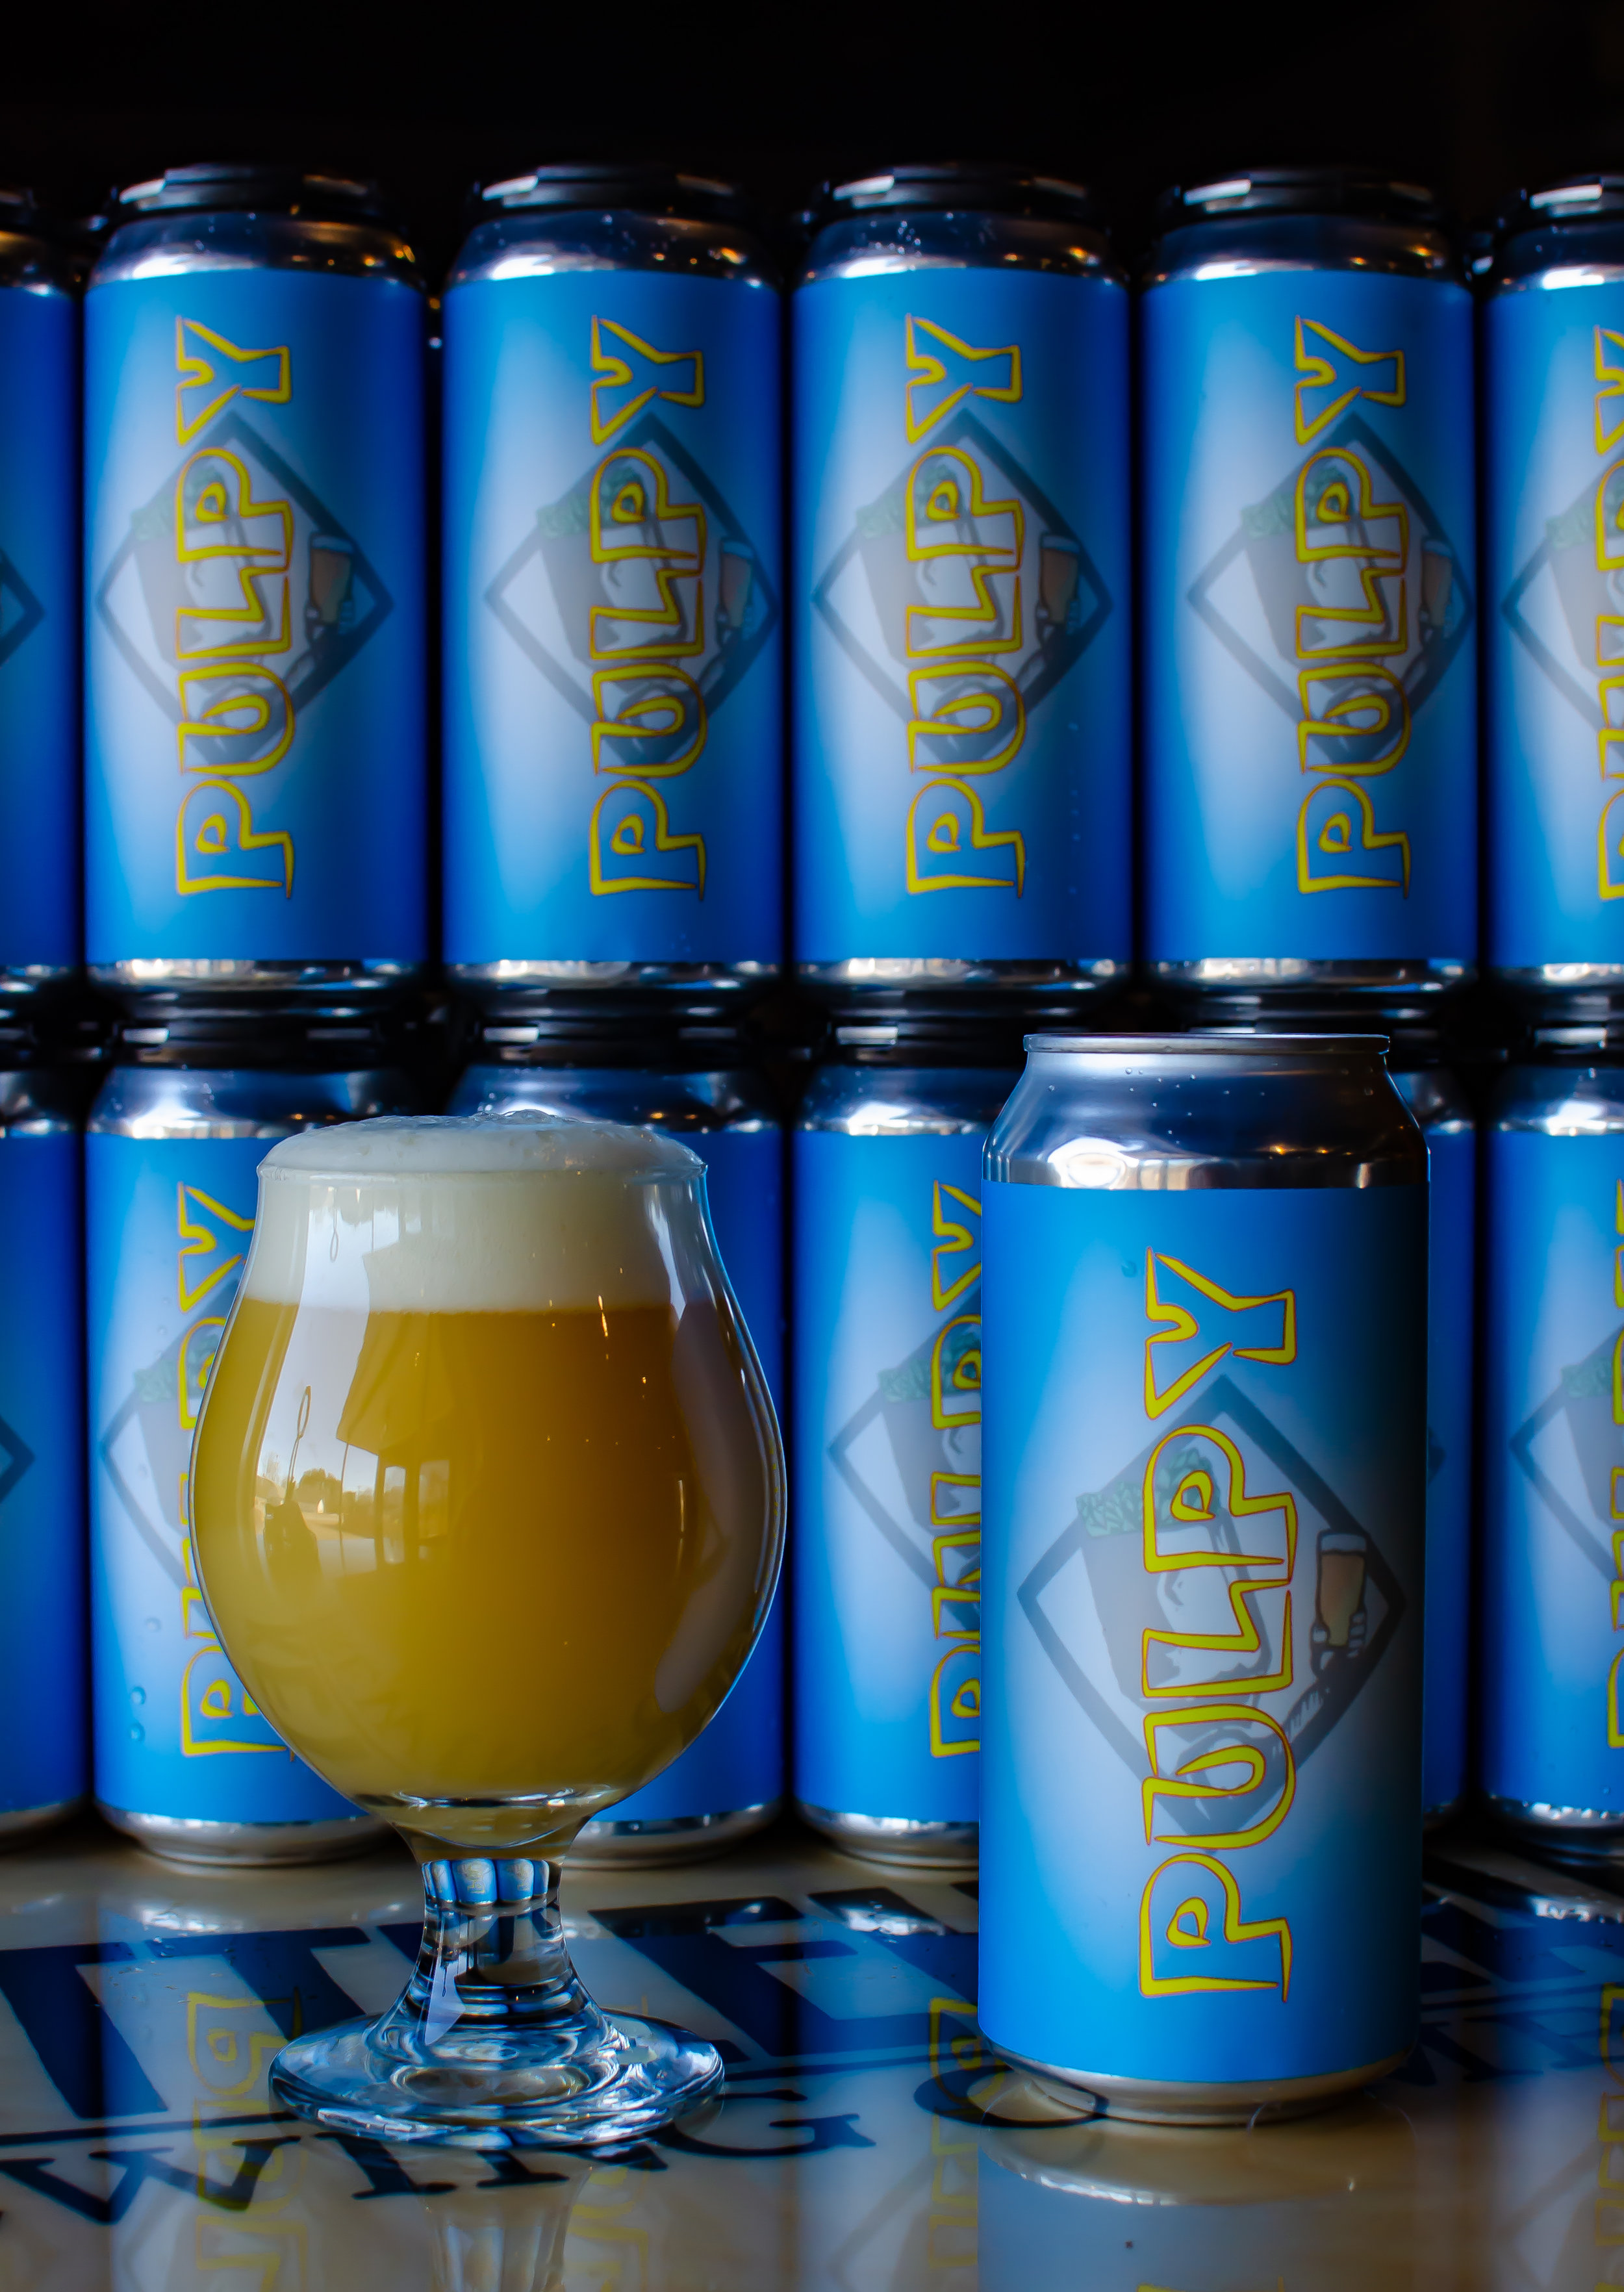 Pulpy IPA - PULPY is a triple dry hopped, 7% NEIPA. Layered with huge hop flavor, big orange juice that remains lively on your tongue. Dry, not overly sweet, but drinks bigger than it is. You might think Pulpy has fresh squeezed orange juice in it.....but trust us, this contains NO PULP. Cheers!